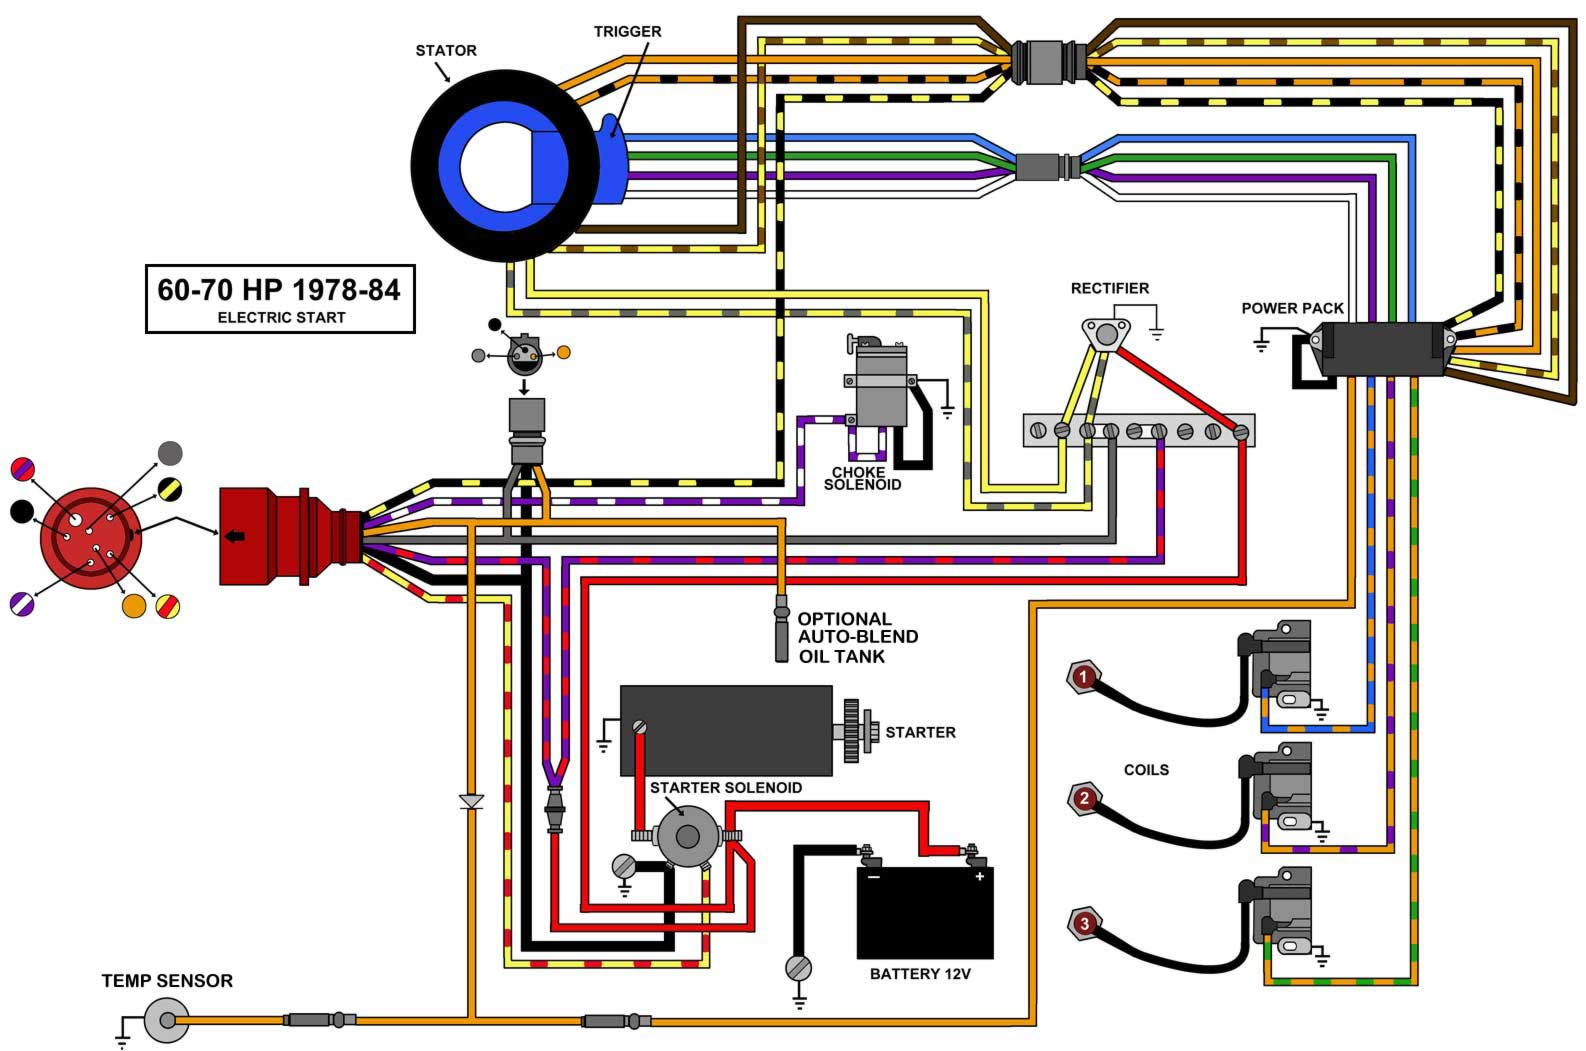 20 Hp Johnson Outboard Wiring Diagram | Wiring Liry  Hp Mercury Wiring Diagram on mercury throttle control diagram, mercruiser parts diagram, 25 horse mercury wiring diagram, mercury outboard wiring diagram, 2006 mercury milan ignition wiring diagram, 75 hp force outboard diagram, mercury ignition switch wiring diagram, merc harness connector diagram, 2003 mercury bigfoot 40 water diagram, johnson ignition wiring diagram, 1988 evinrude 35 hp diagram, johnson 40 hp engine wiring diagram, yamaha 90 hp outboard diagram, mercury outboard linkage diagram, 3 hp yamaha diagram,